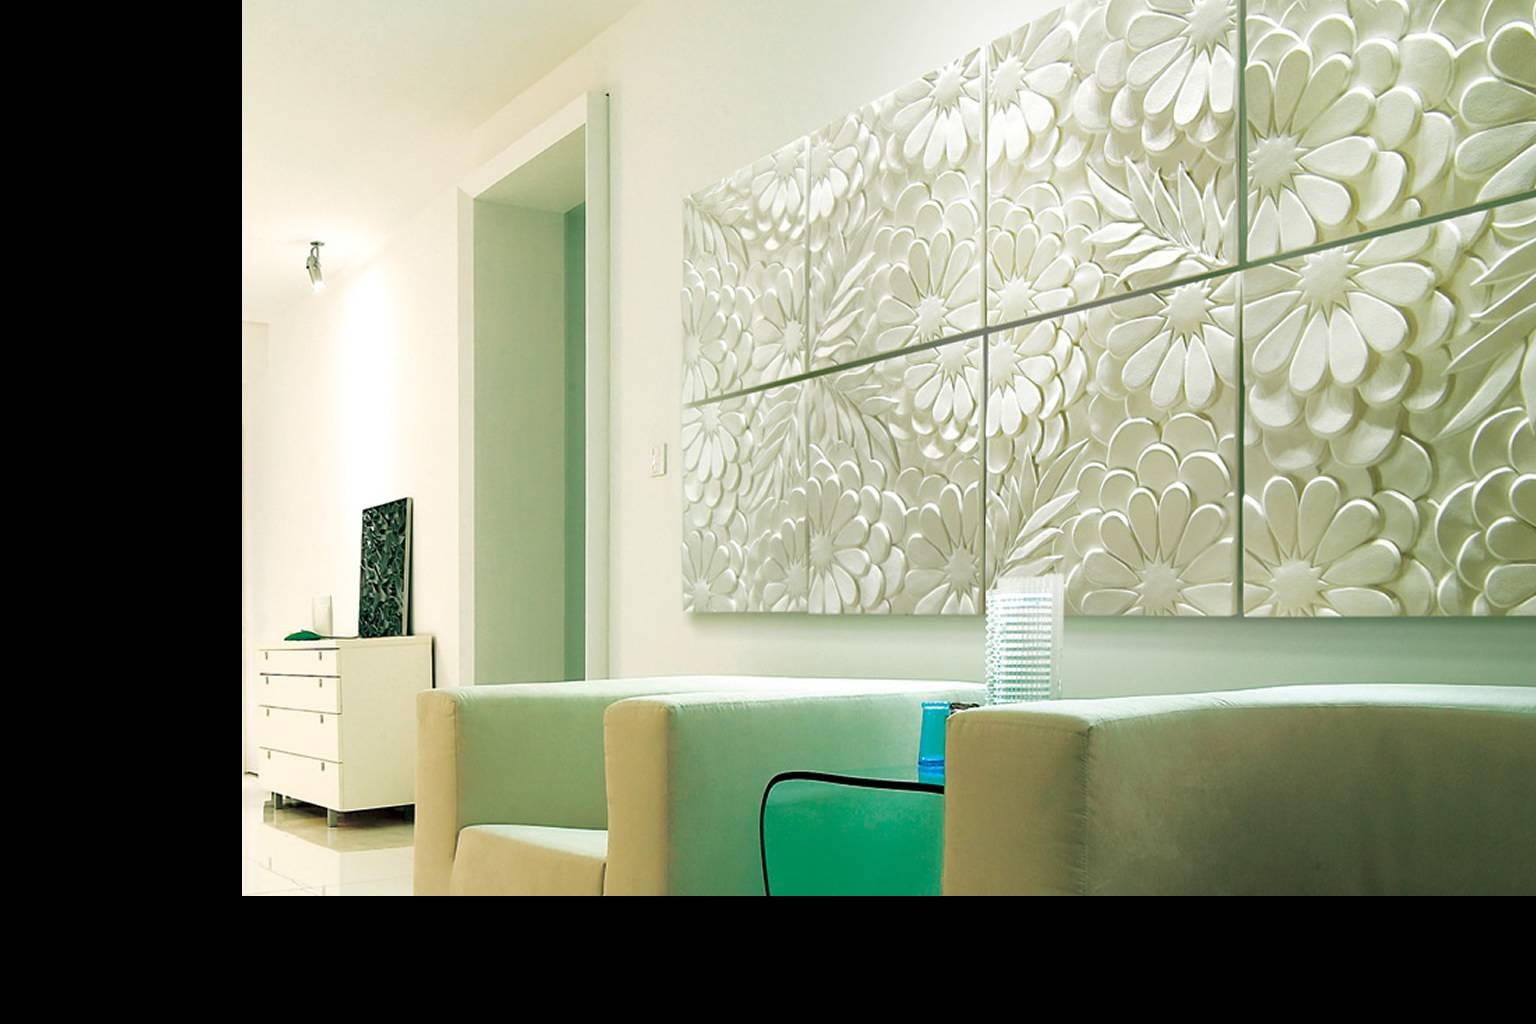 Newdecor 3D Wall Arts & 3Dpanels intended for Most Recently Released Cubes 3D Wall Art